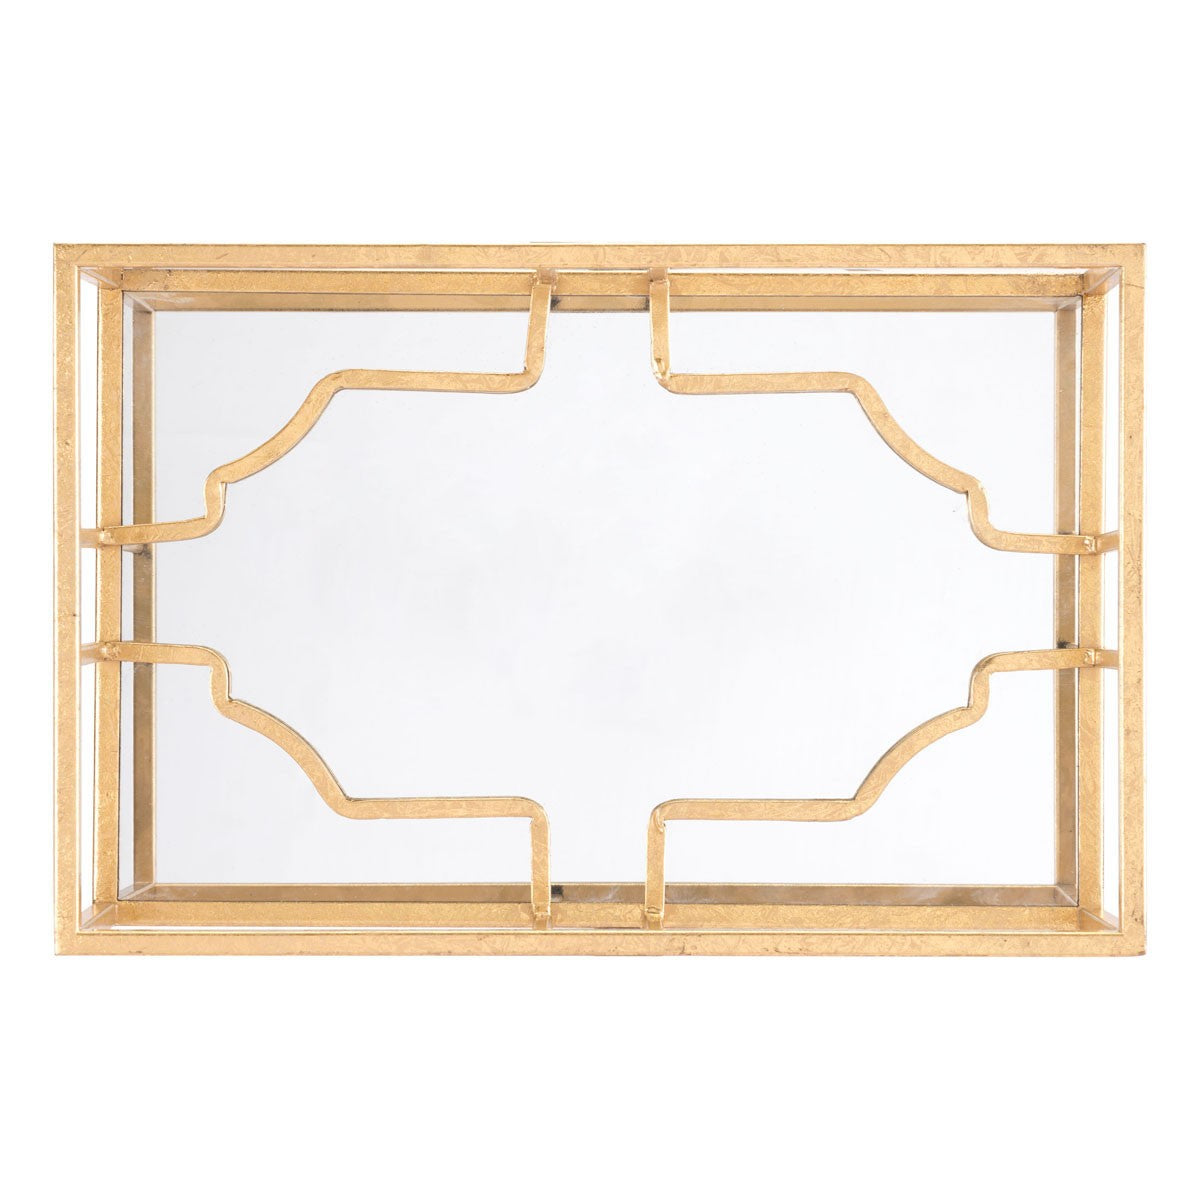 Cube wall decor gold